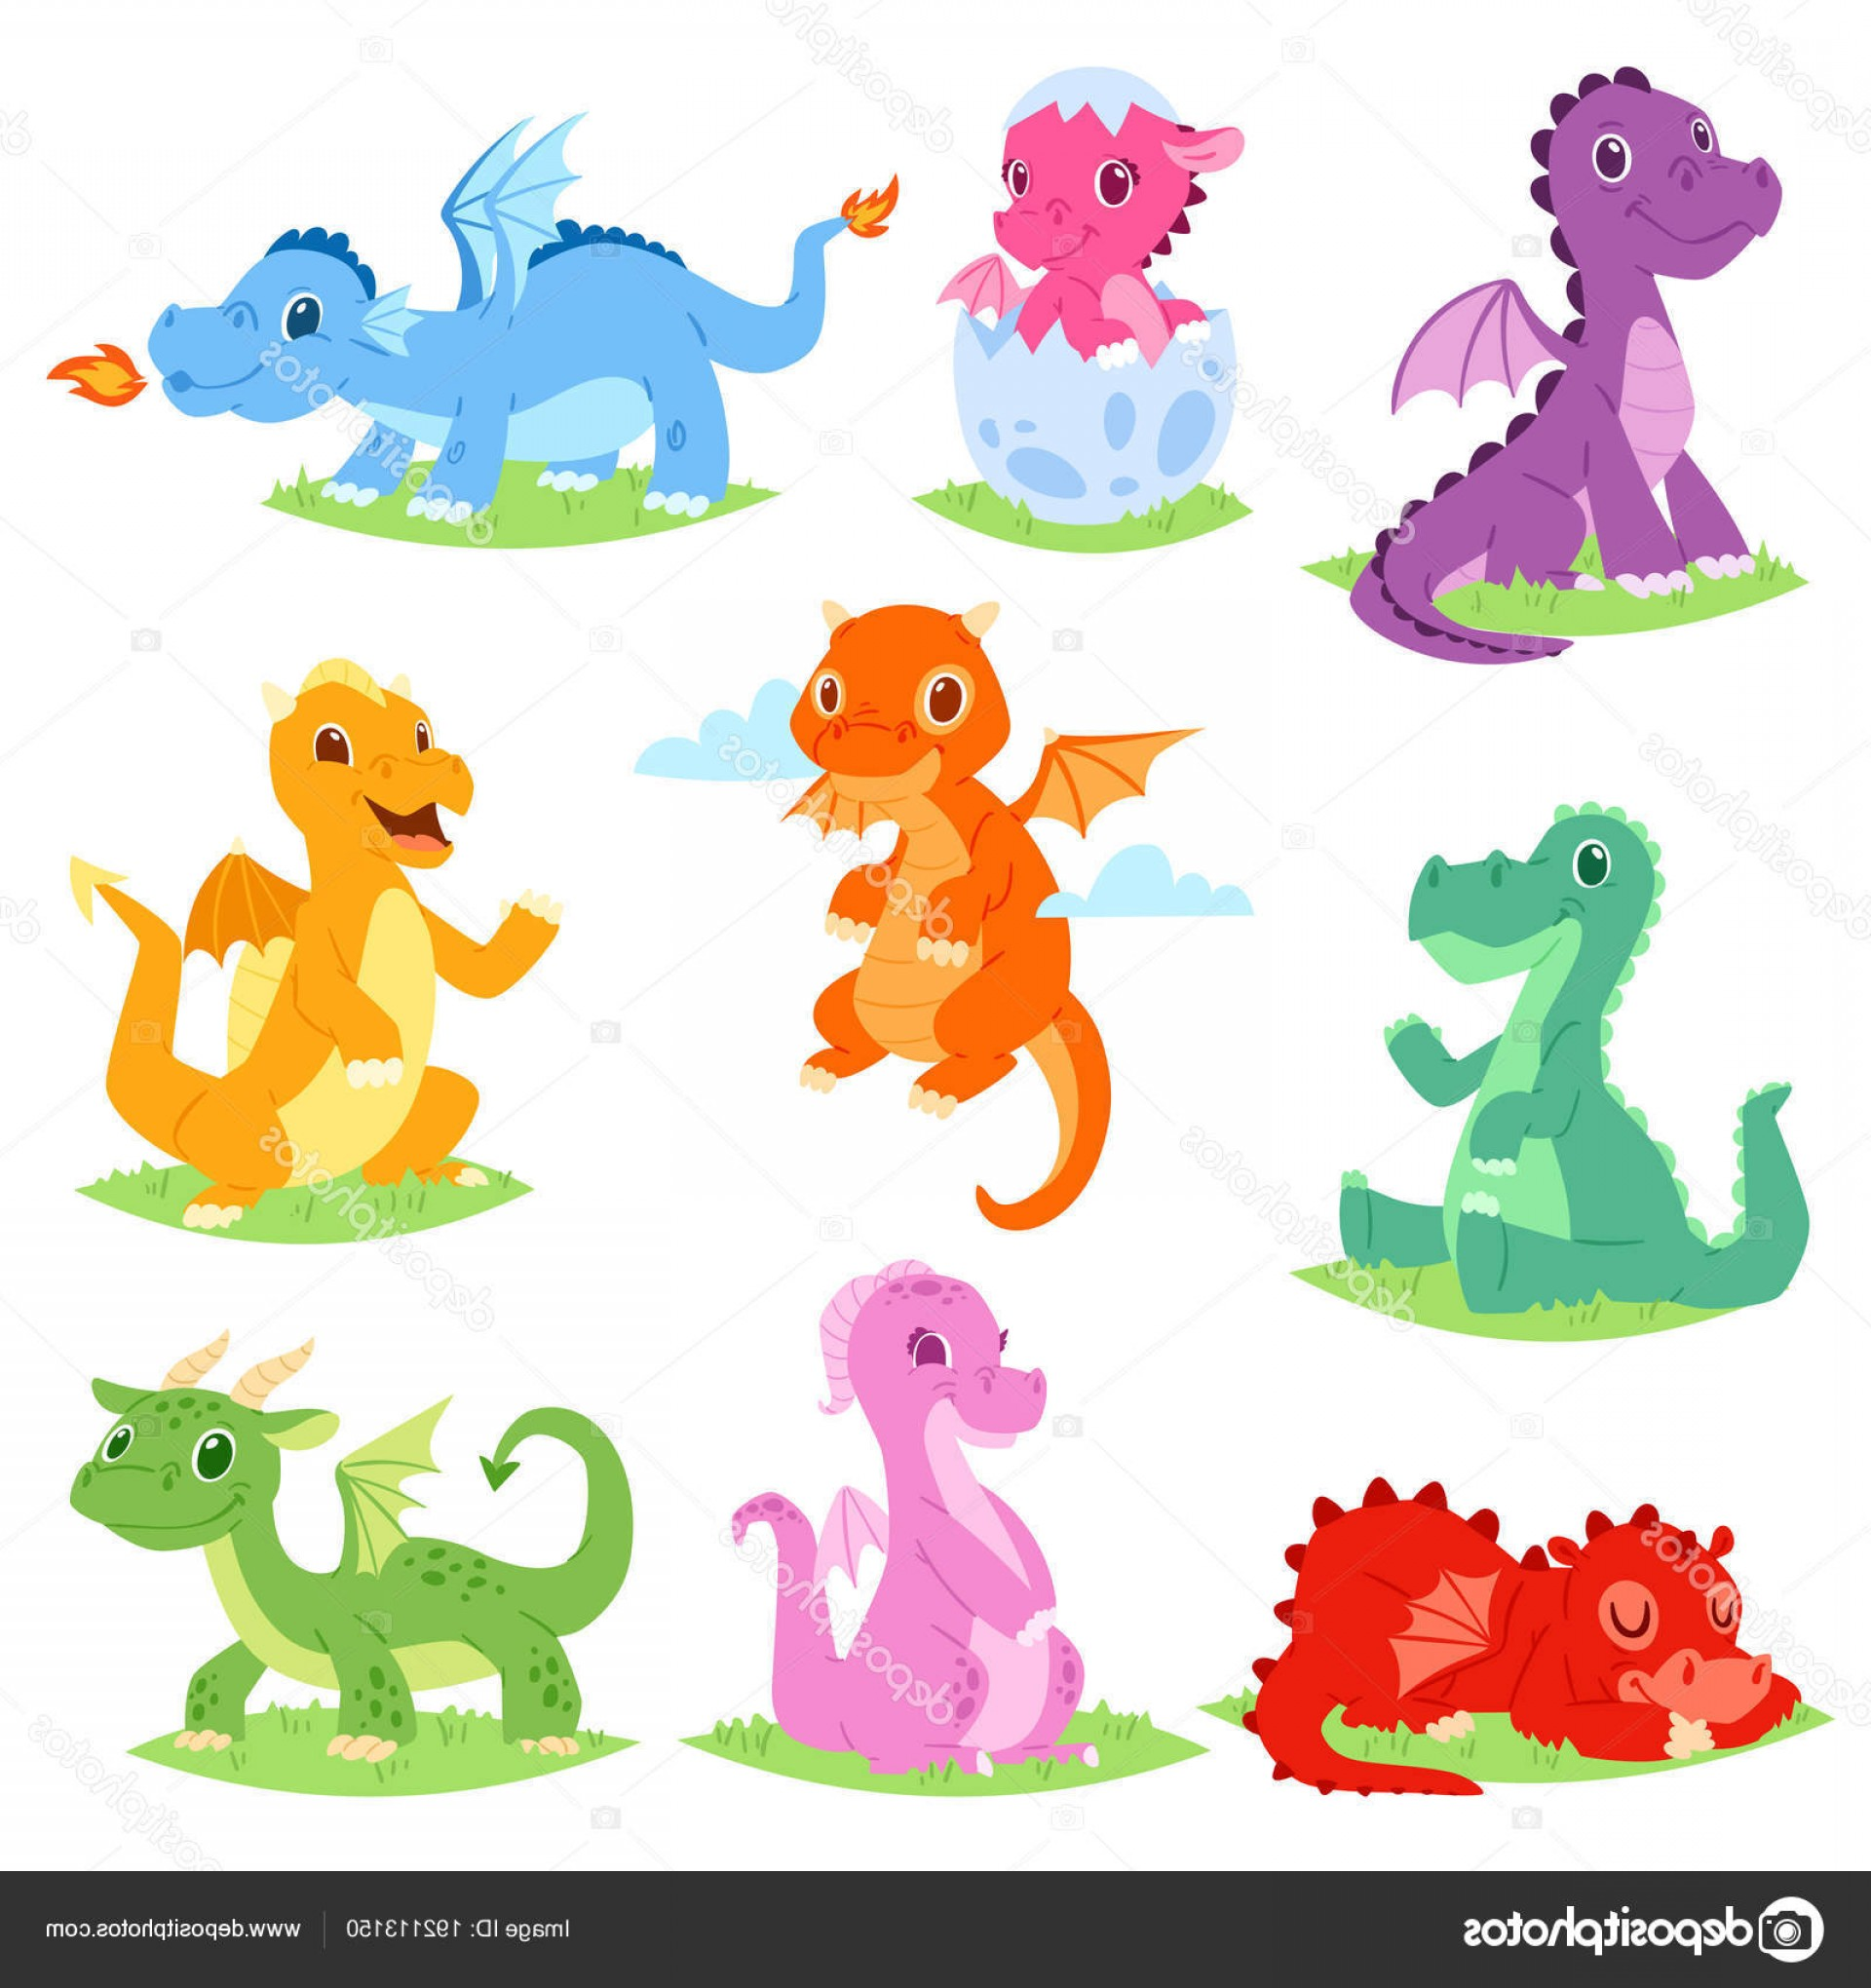 Baby Dragon Silhouette Vector: Stock Illustration Cartoon Dragon Vector Cute Dragonfly